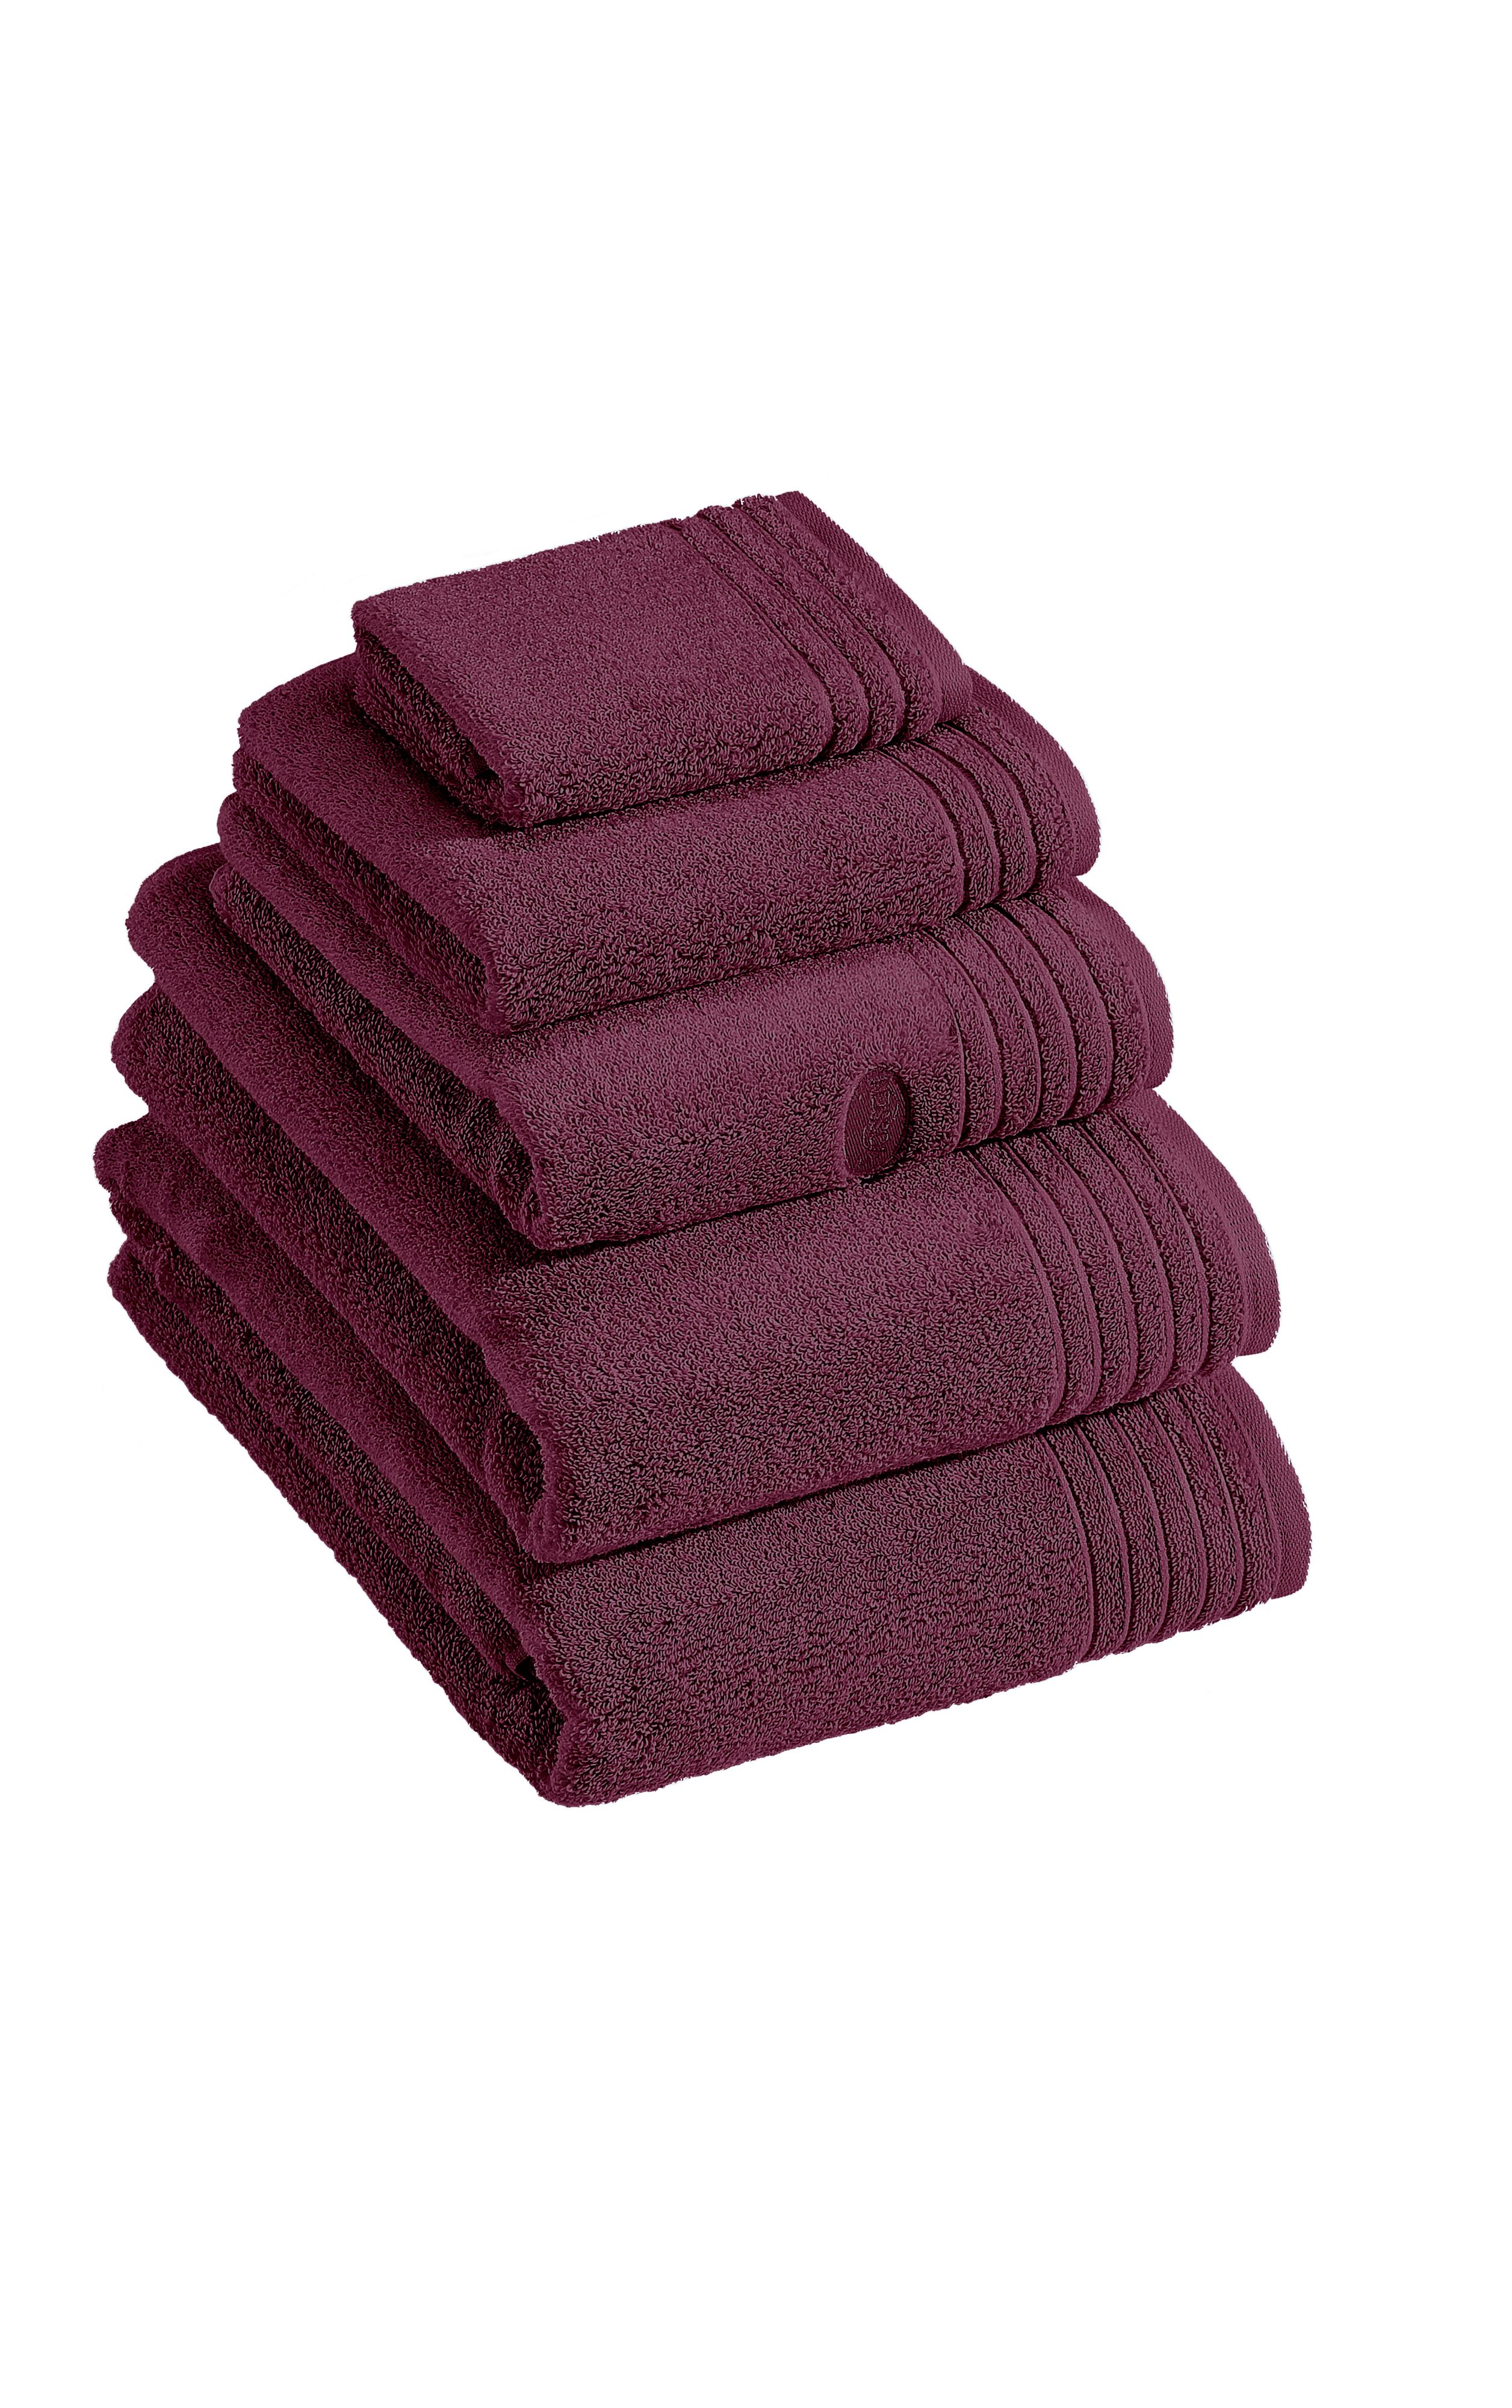 Dreams towel range in berry